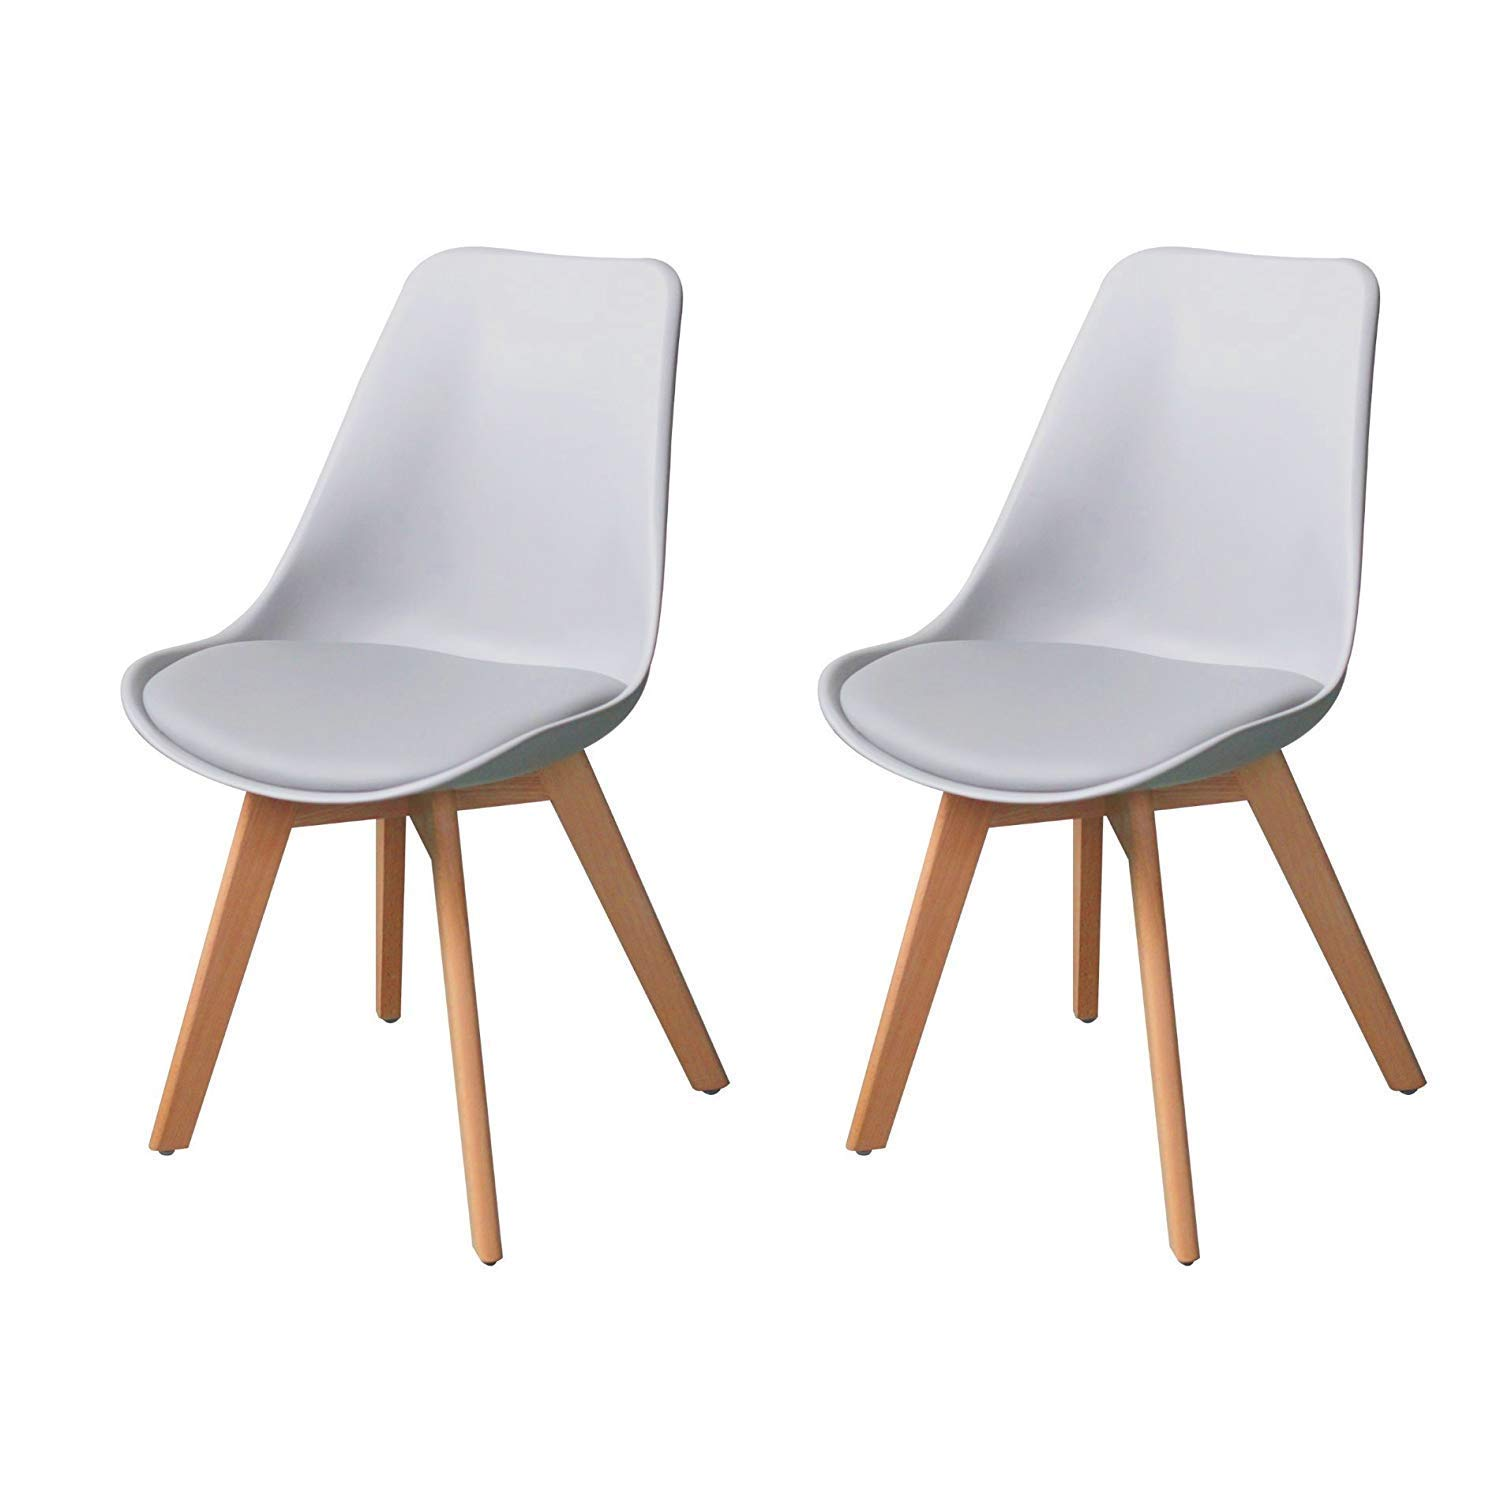 leather side chair home massage ids set of 2 eames style metal legs dining room pu image is loading